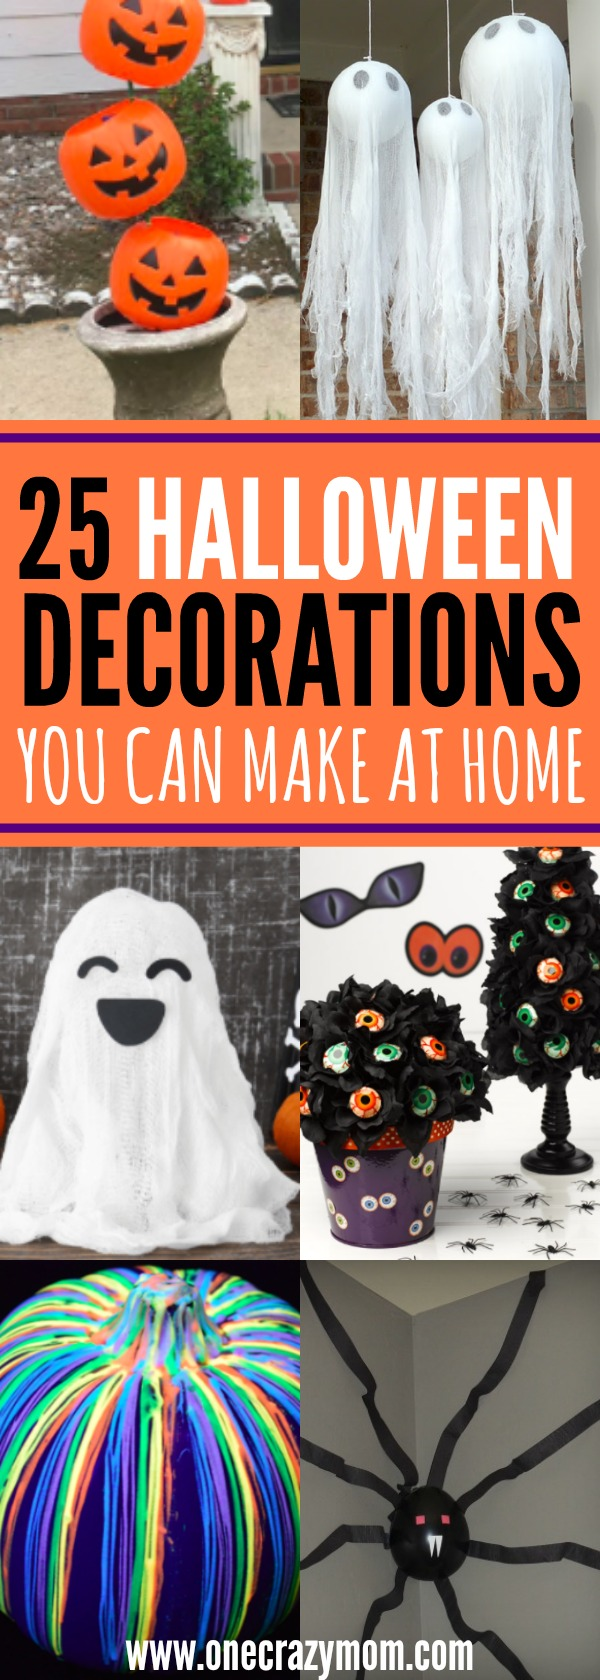 halloween decorations that you can make at home elegant ForHalloween Decorations You Can Make At Home